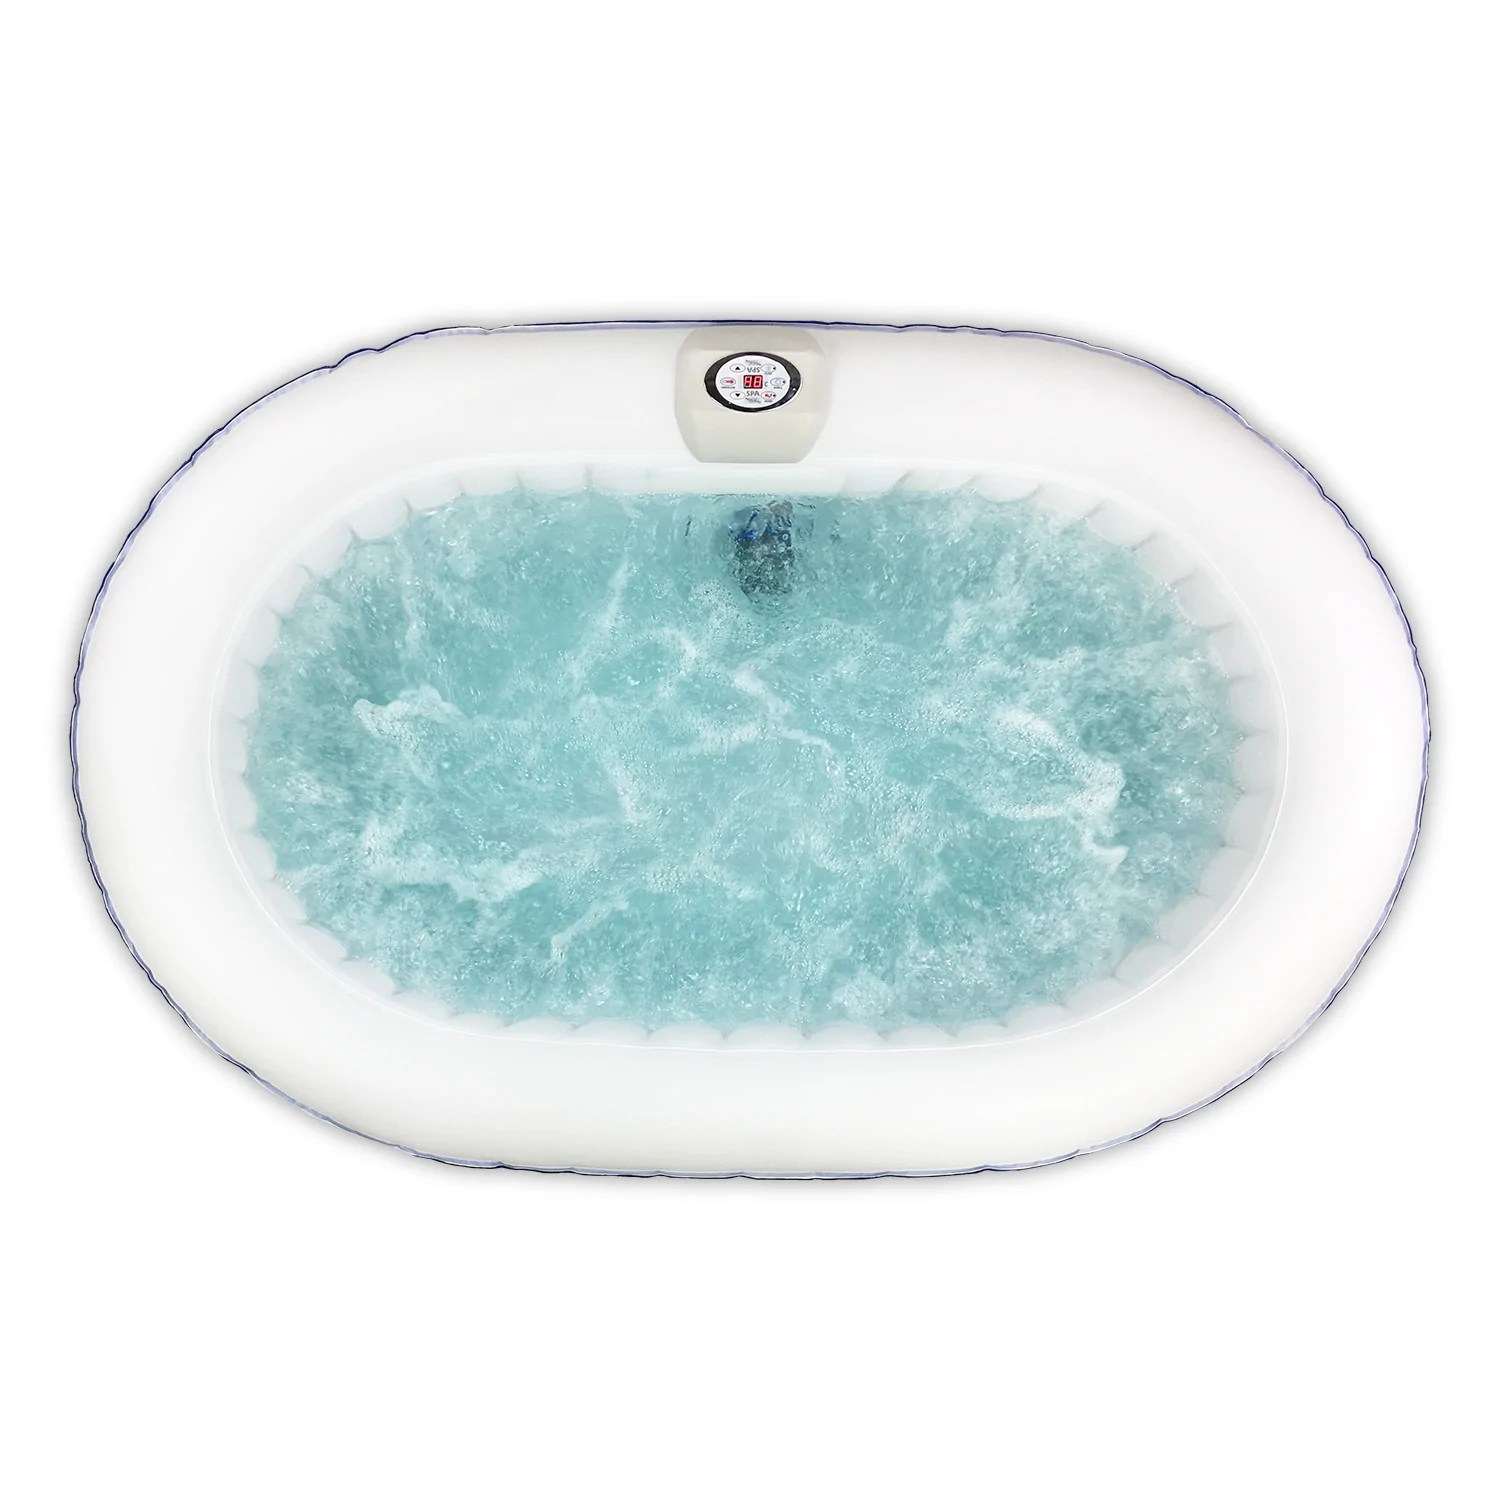 Aquaparx Whirlpool 550 Inflatable Hot Tub